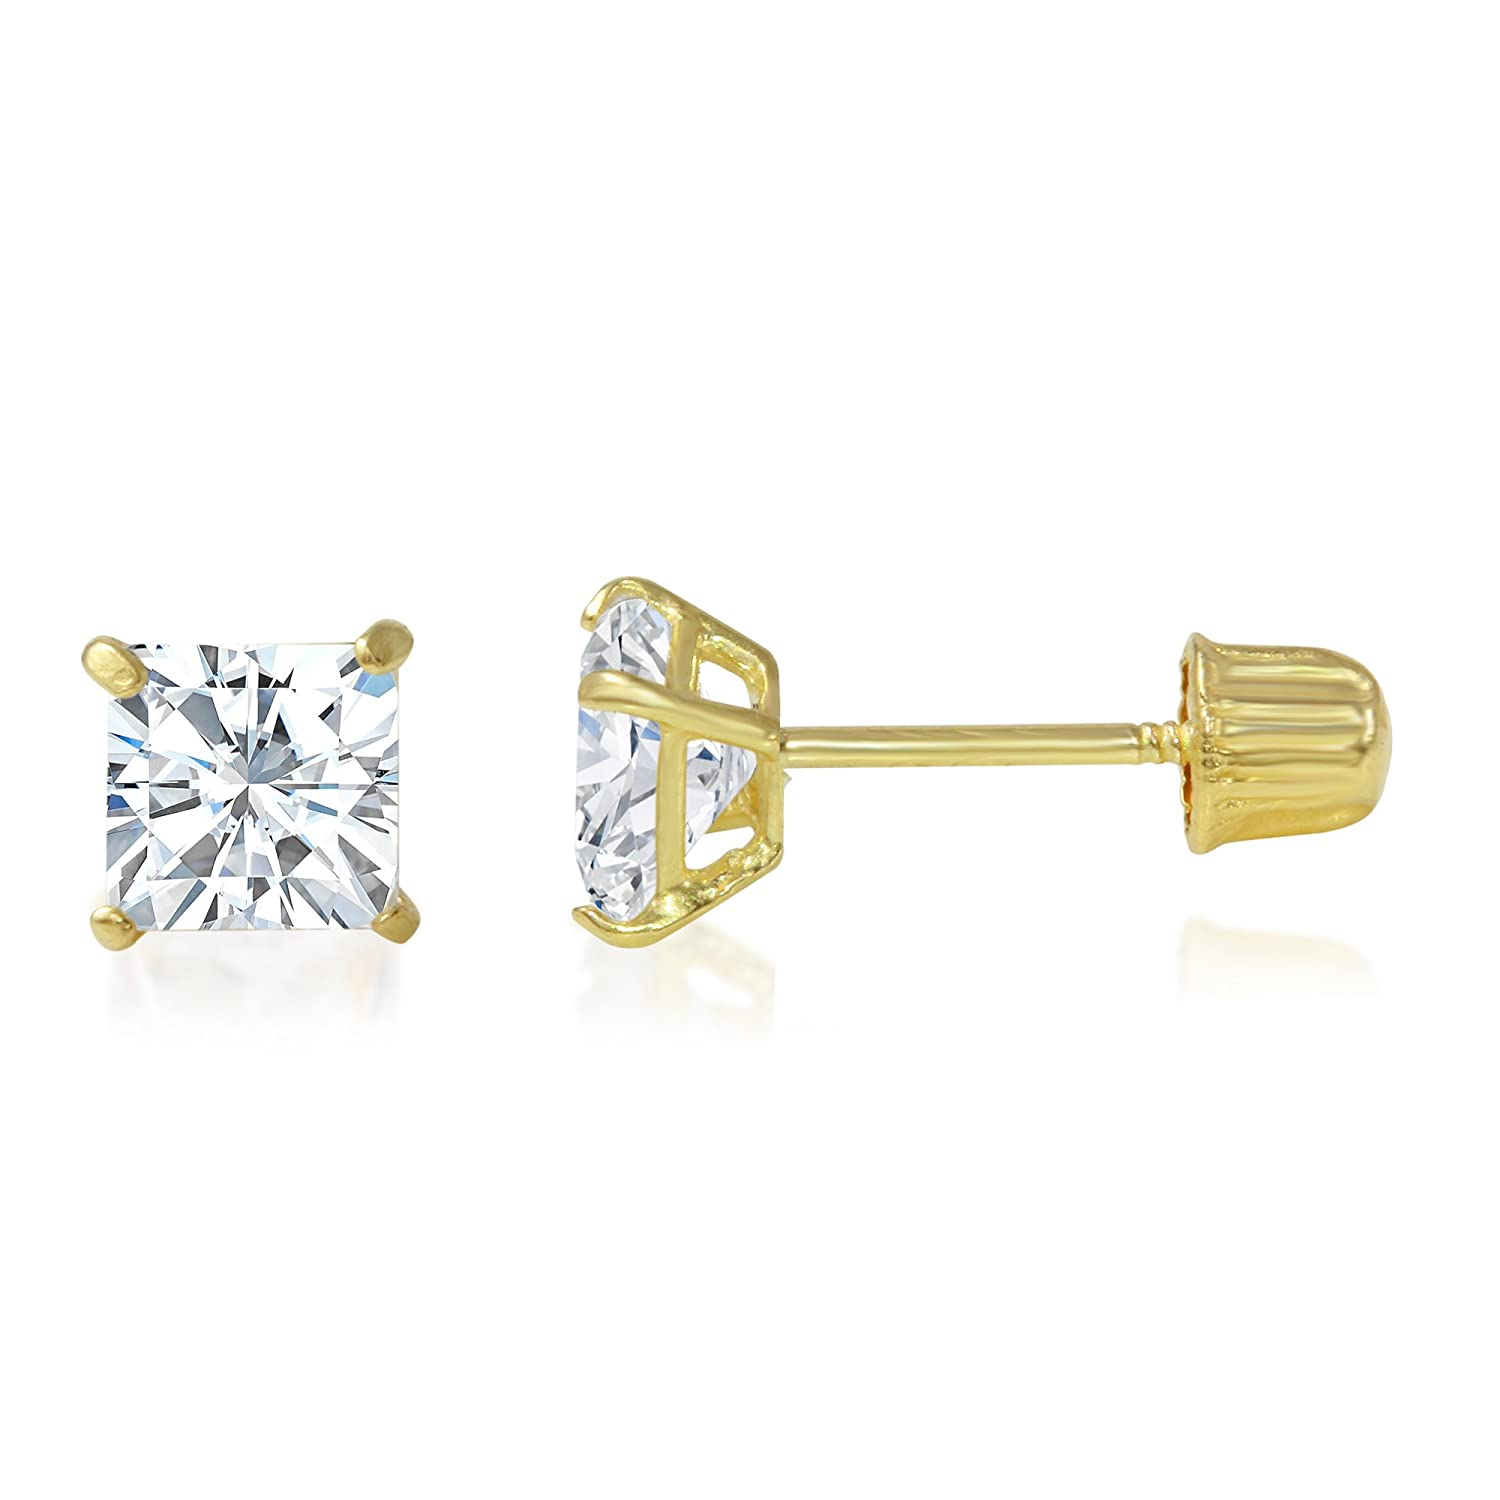 14K Yellow OR White Gold Square Solitaire Princess Cut Cubic Zirconia CZ Stud Screw Back Earrings in Various Sizes Ioka